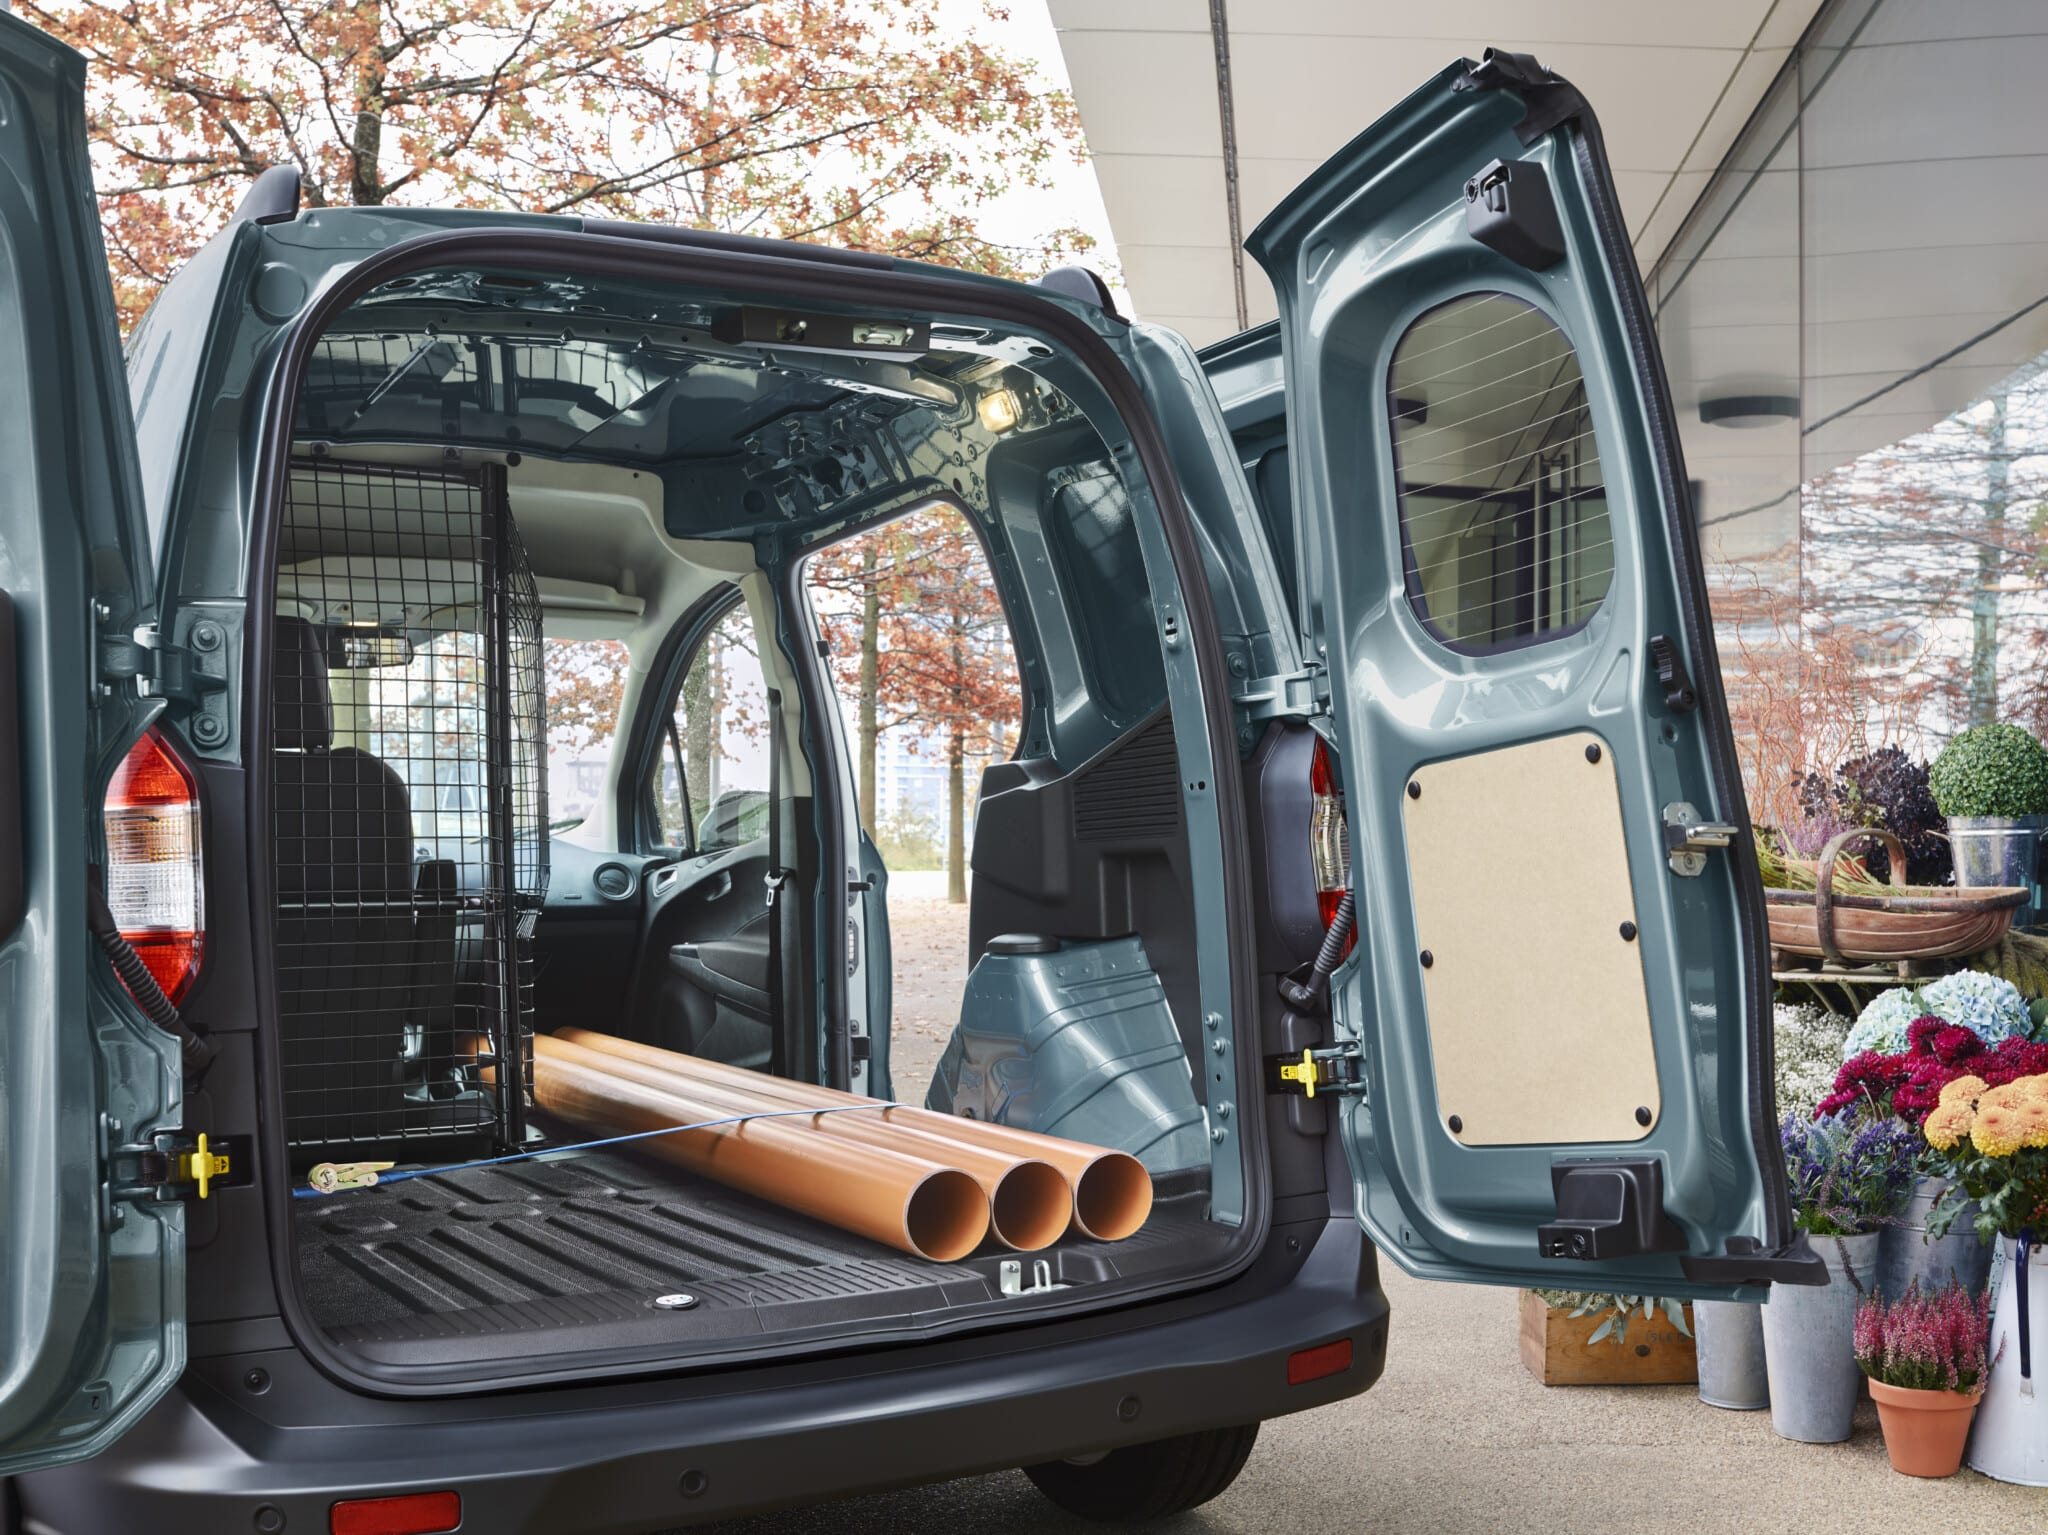 Ford Transit Courier maletero